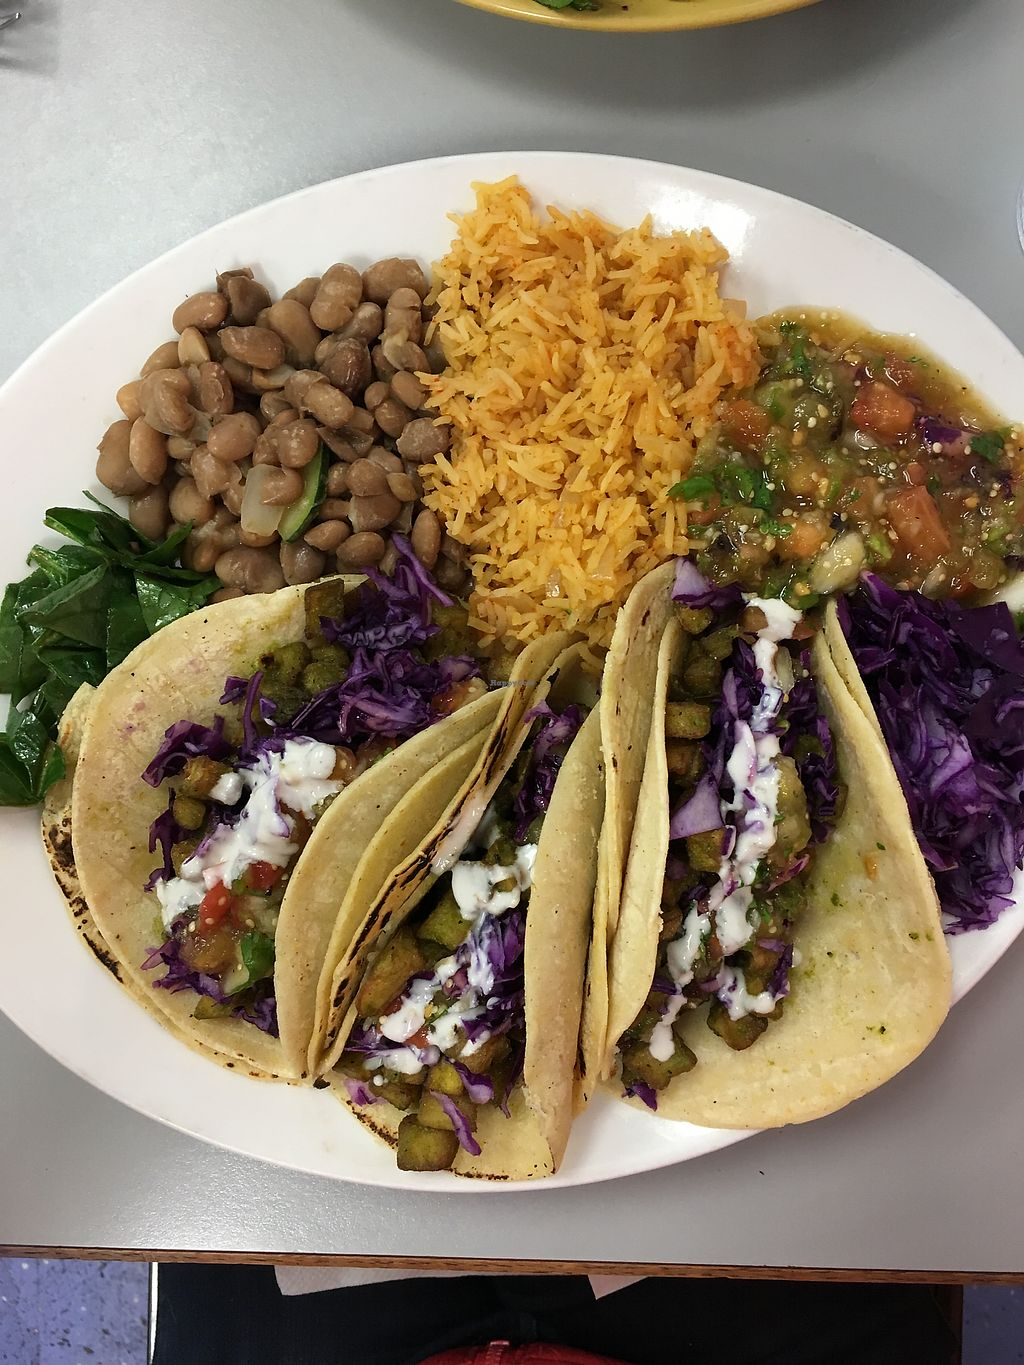 "Photo of Tumerico  by <a href=""/members/profile/Winedunce"">Winedunce</a> <br/>Incredibly delicious eggplant tacos  <br/> December 23, 2017  - <a href='/contact/abuse/image/83572/338259'>Report</a>"